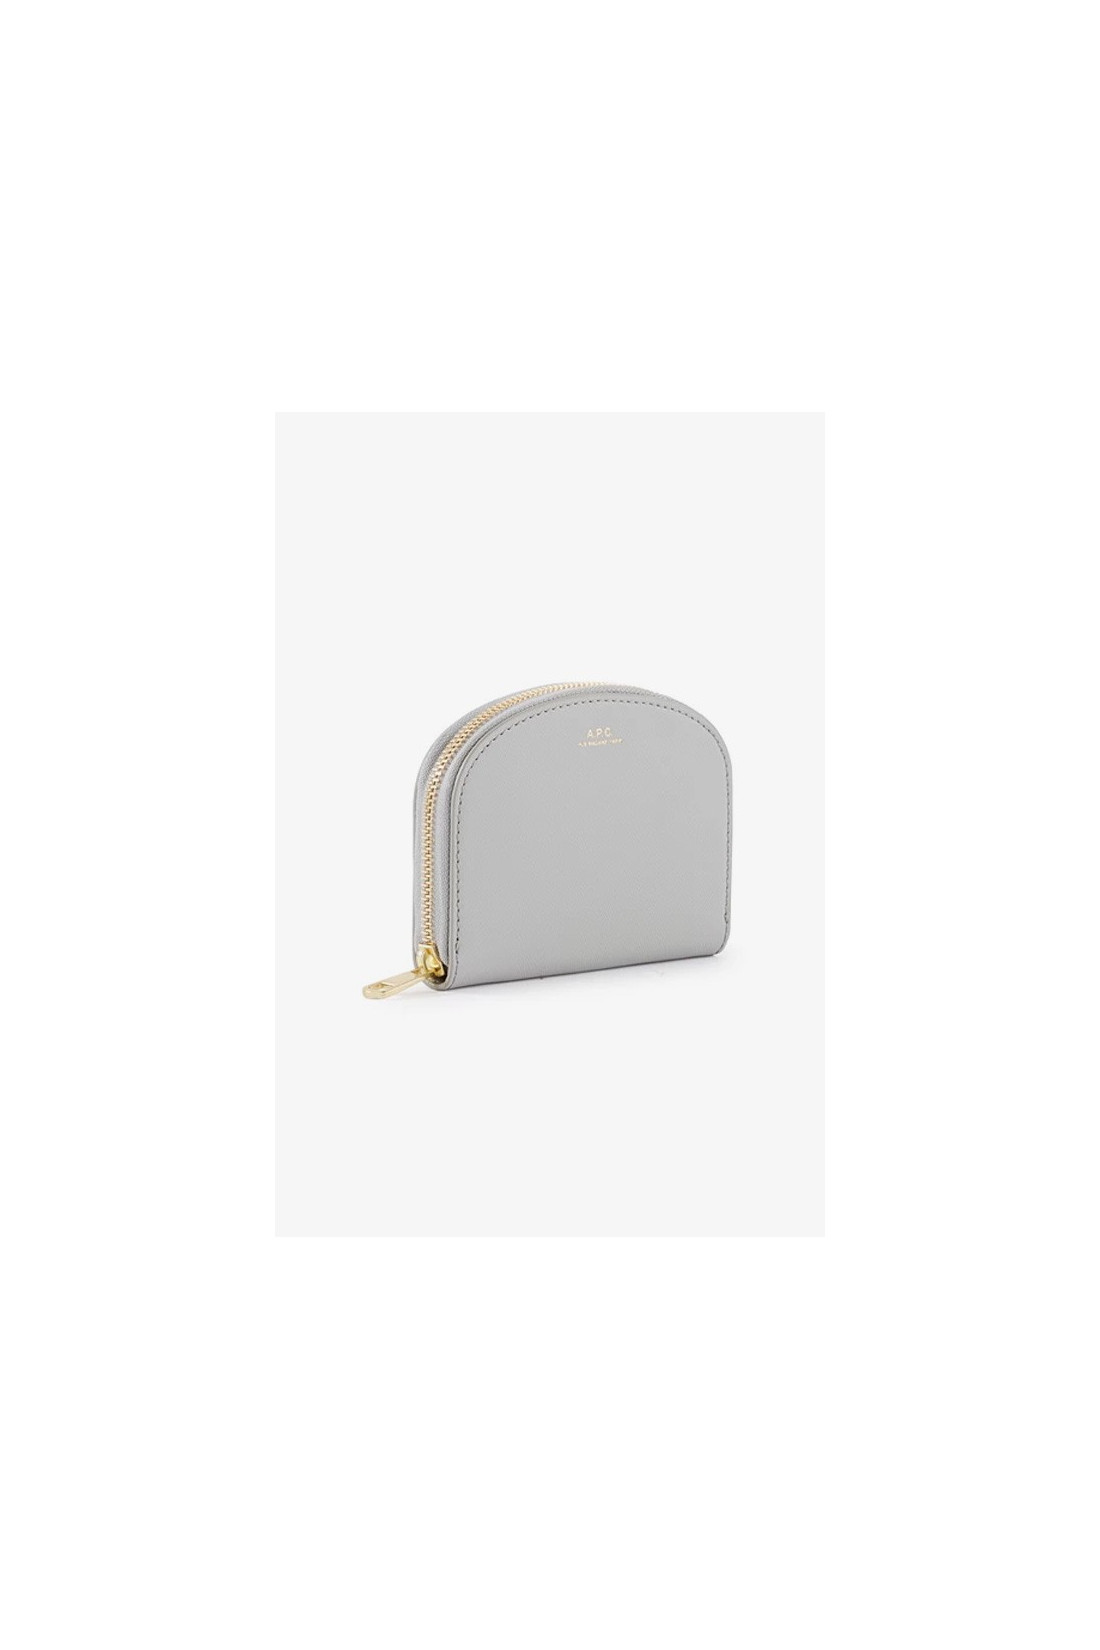 A.P.C. FOR WOMAN / Compact demi-lune embosse Gris clair